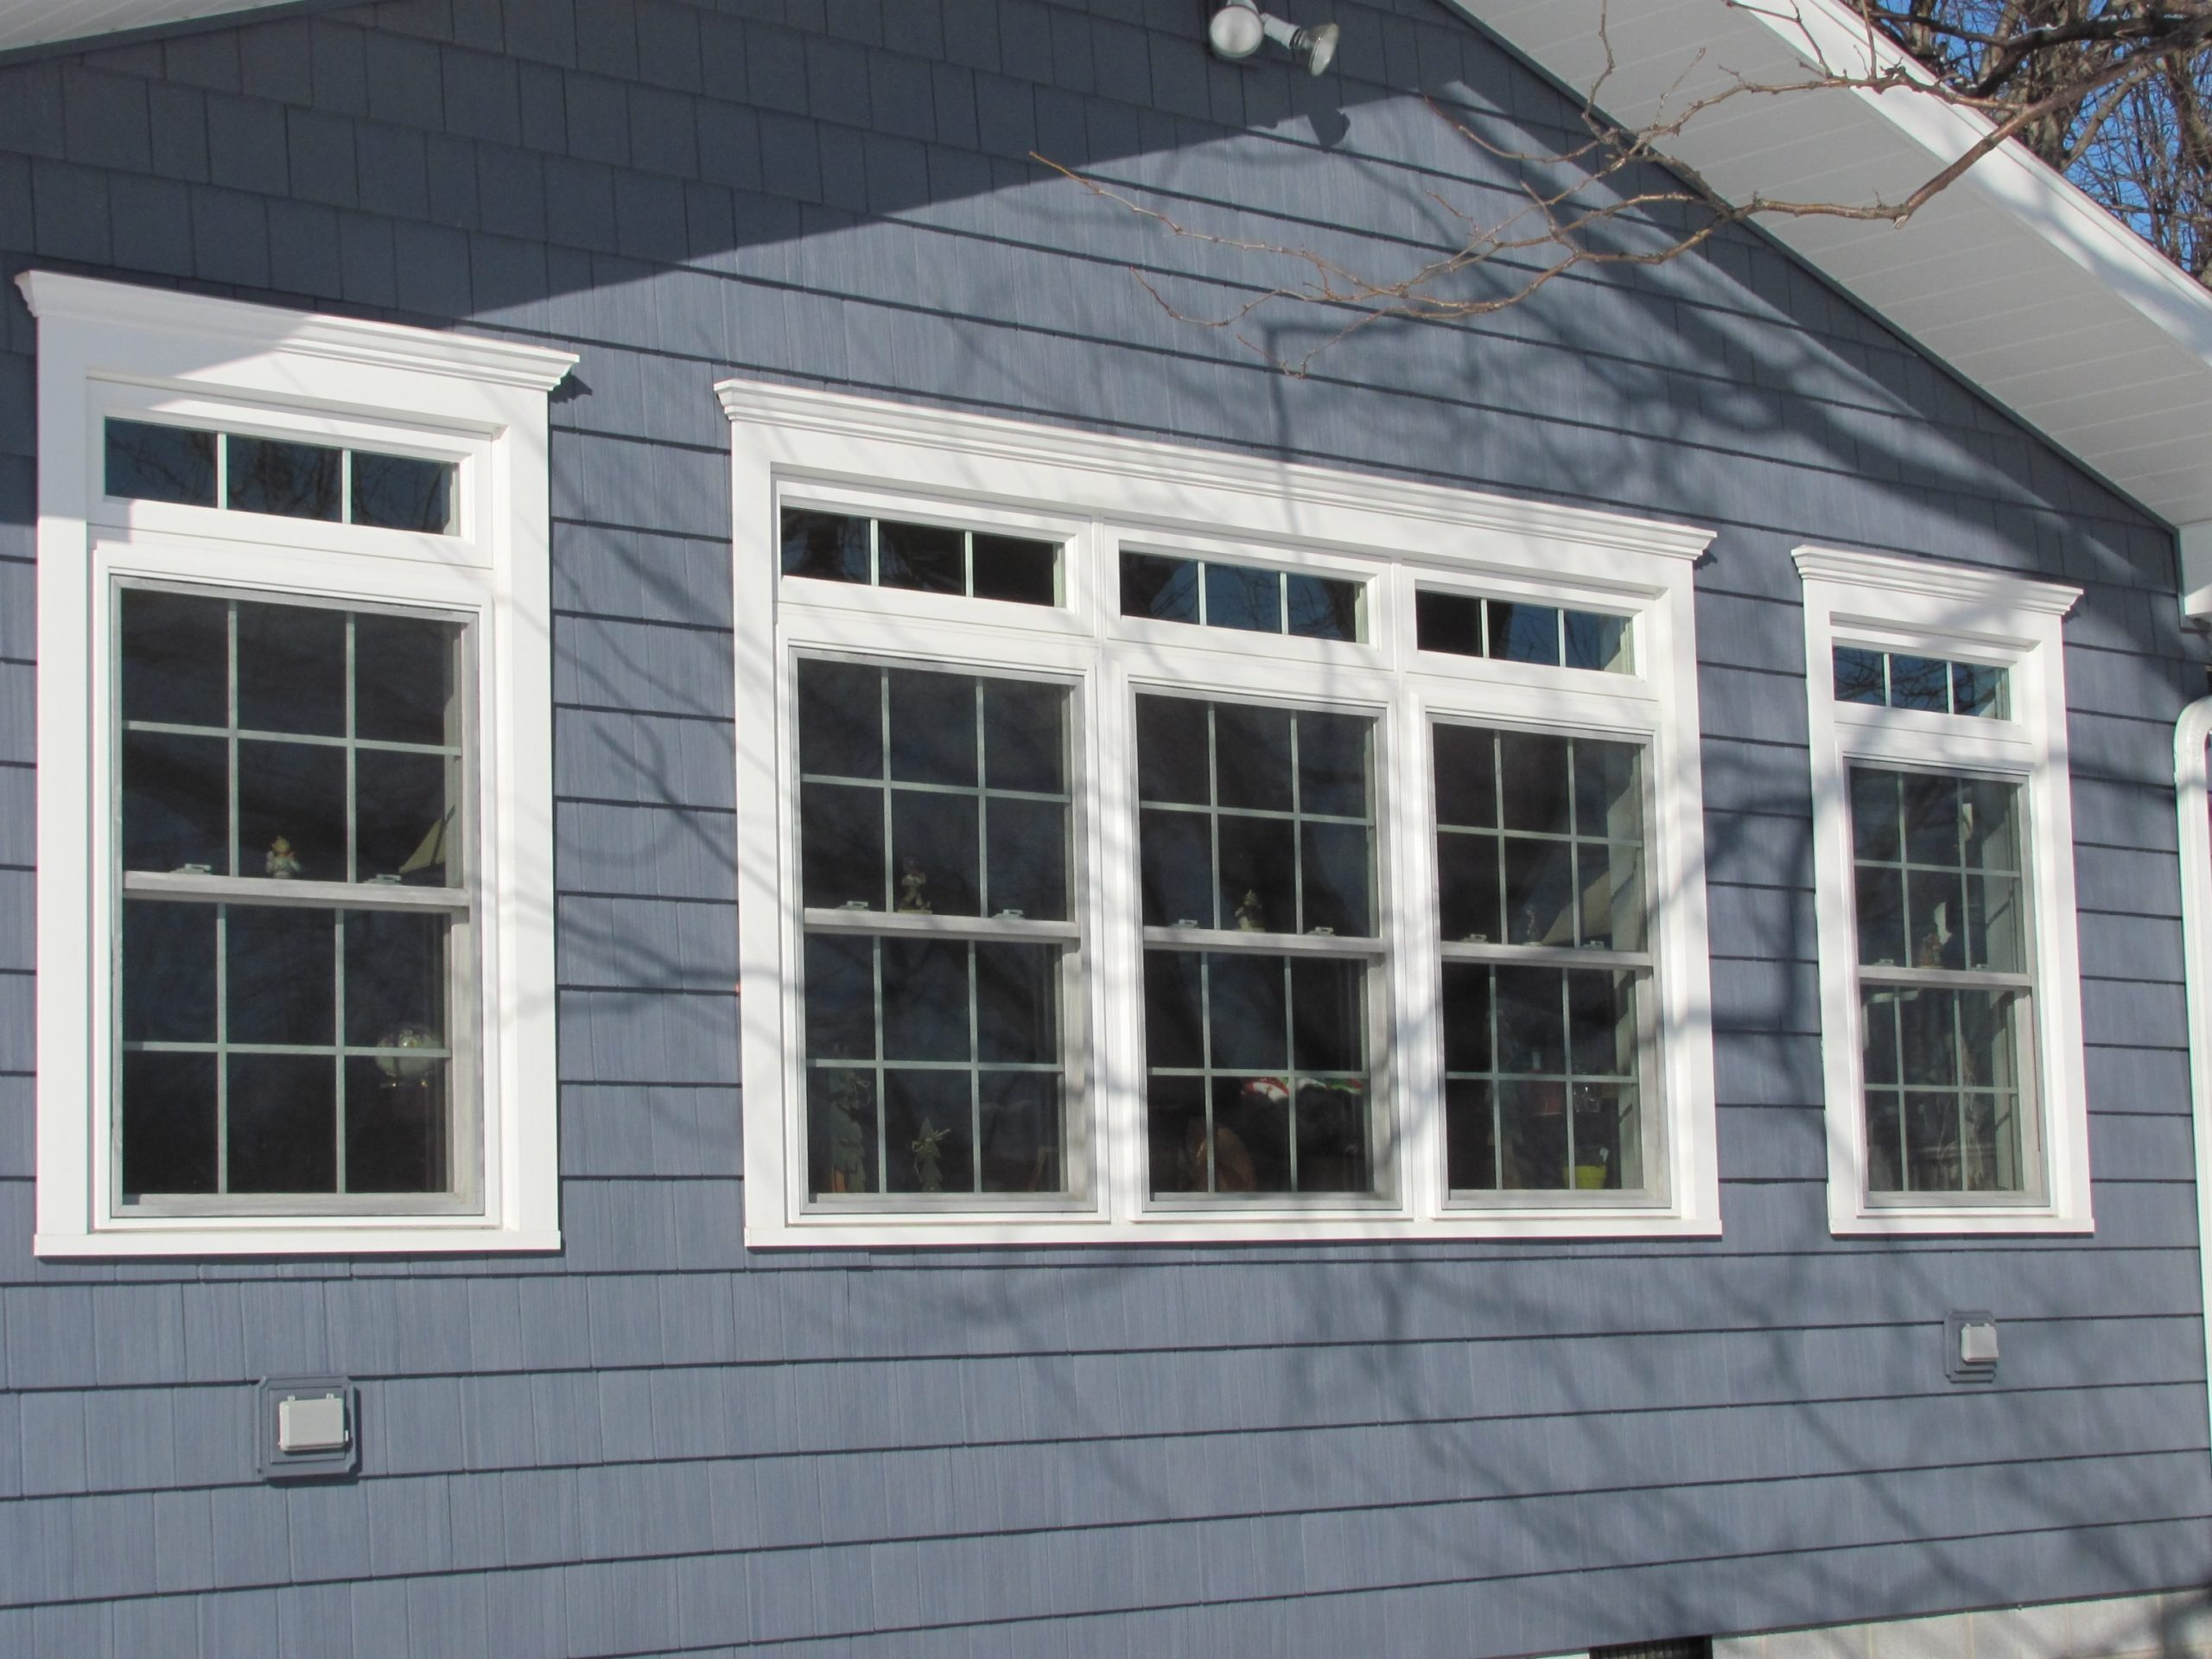 Storm windows versus replacement windows for New replacement windows